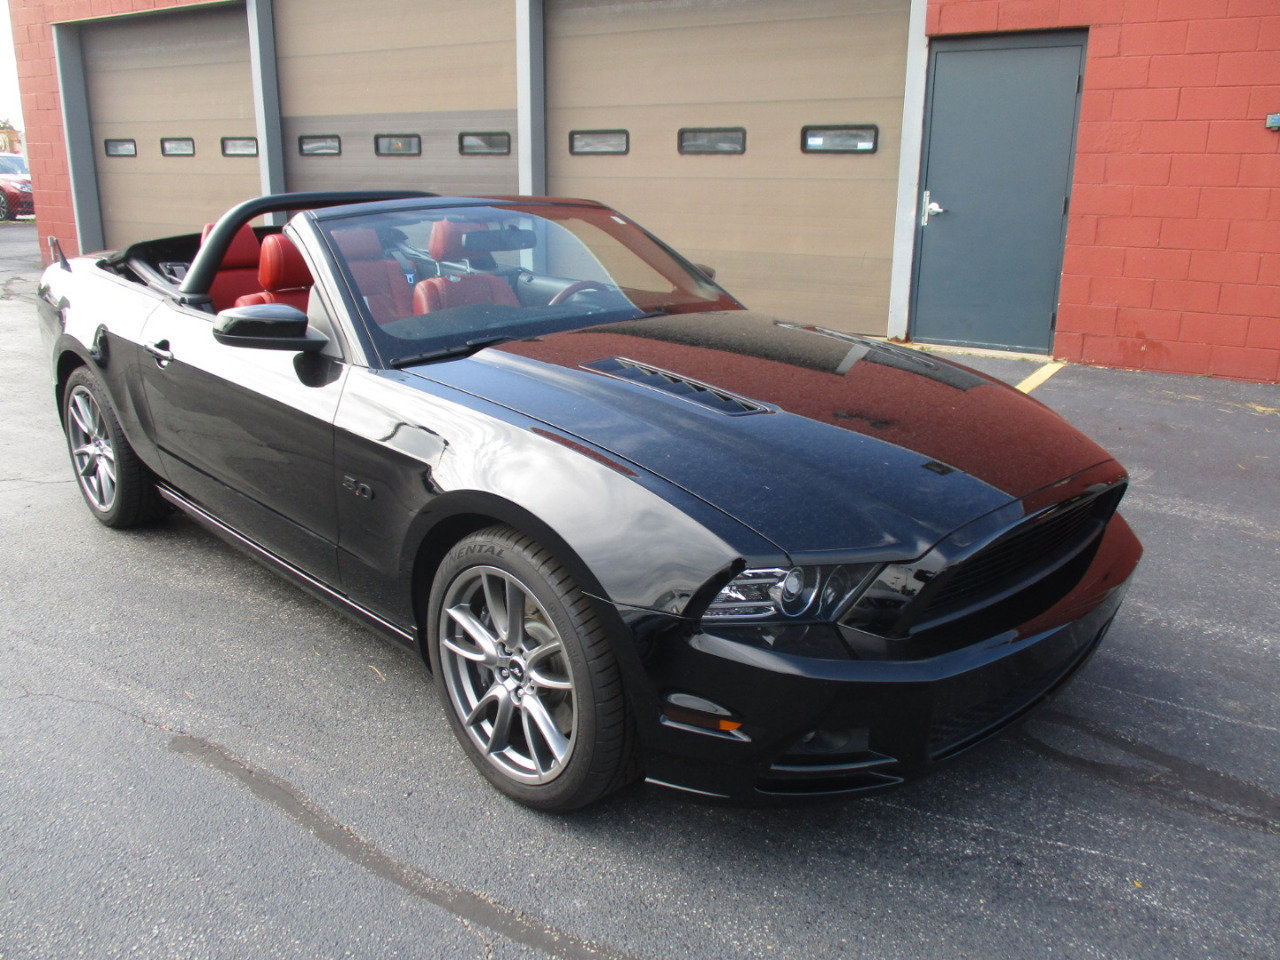 2013 Ford Mustang GT Convertible image